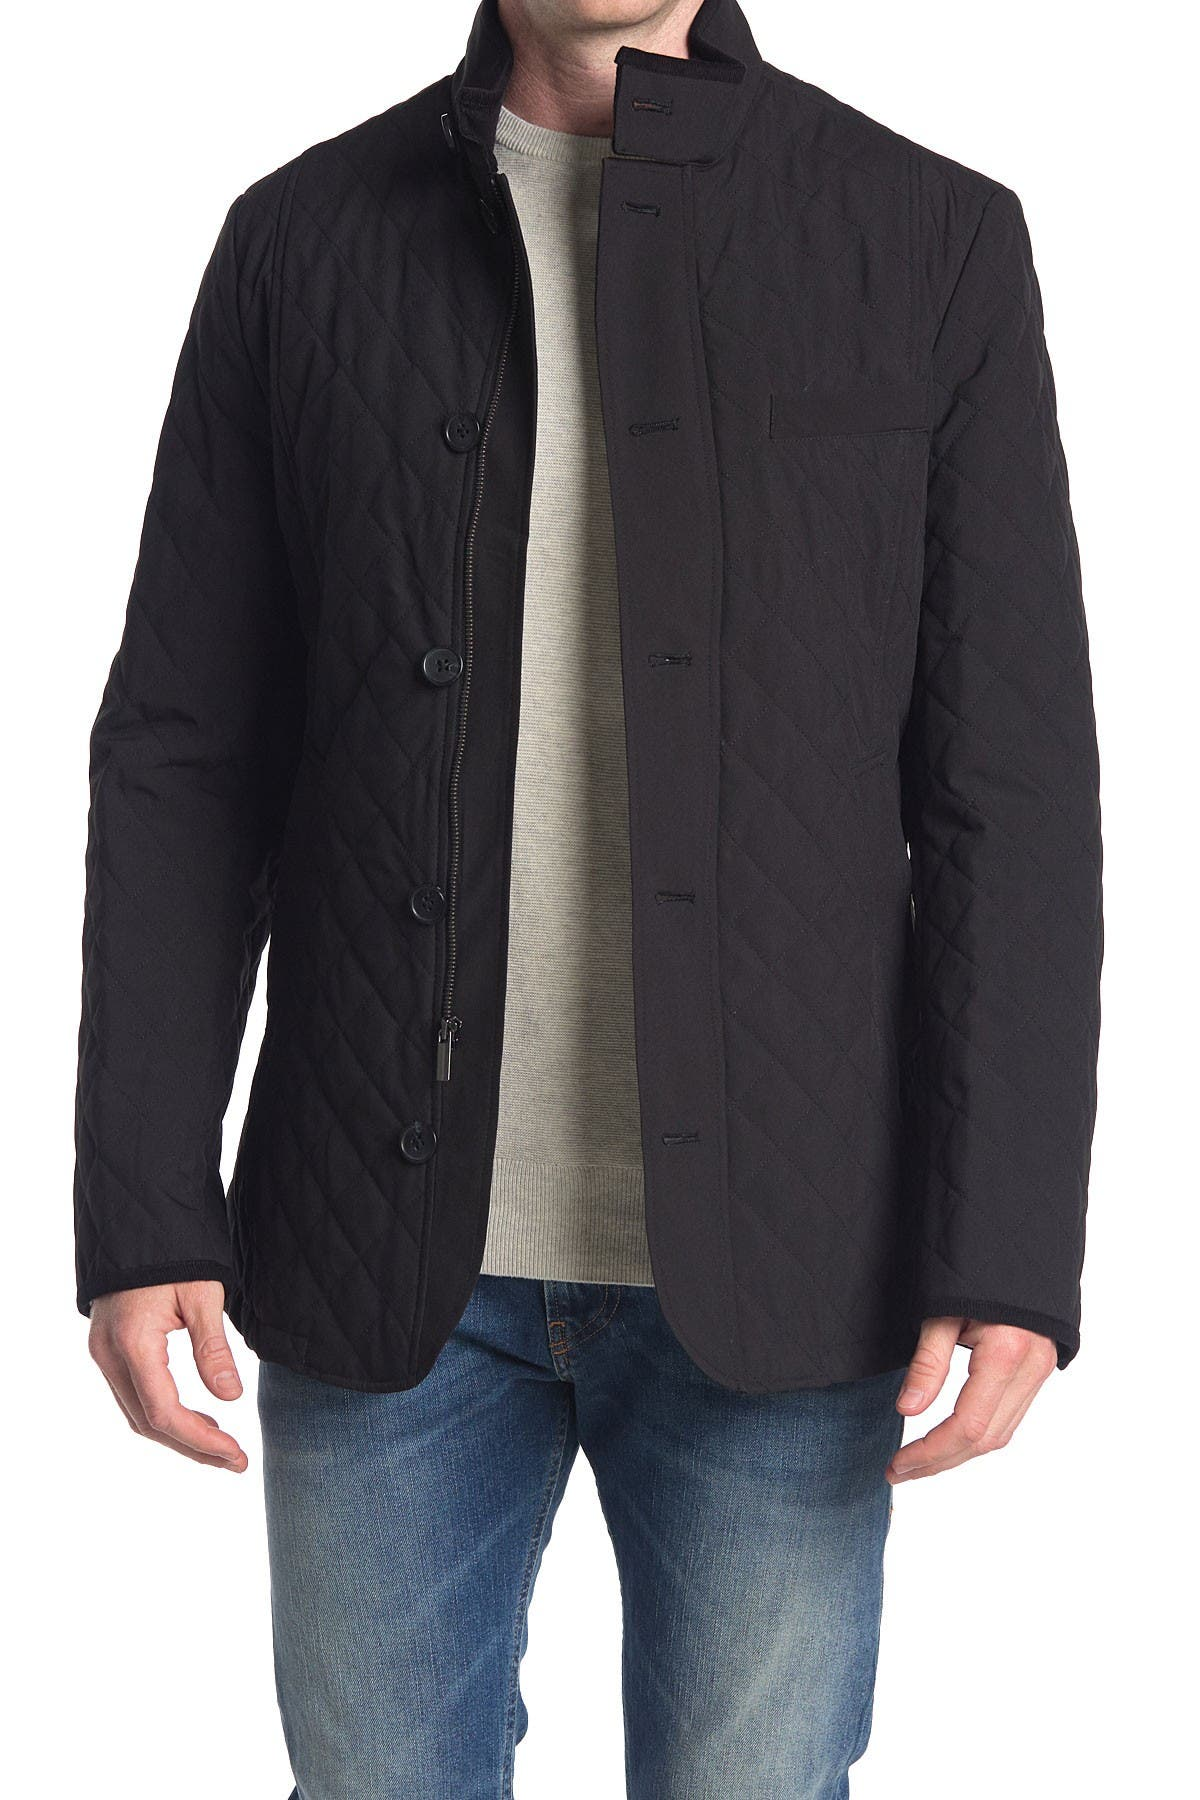 Image of Cardinal of Canada Quilted Mock Neck Jacket